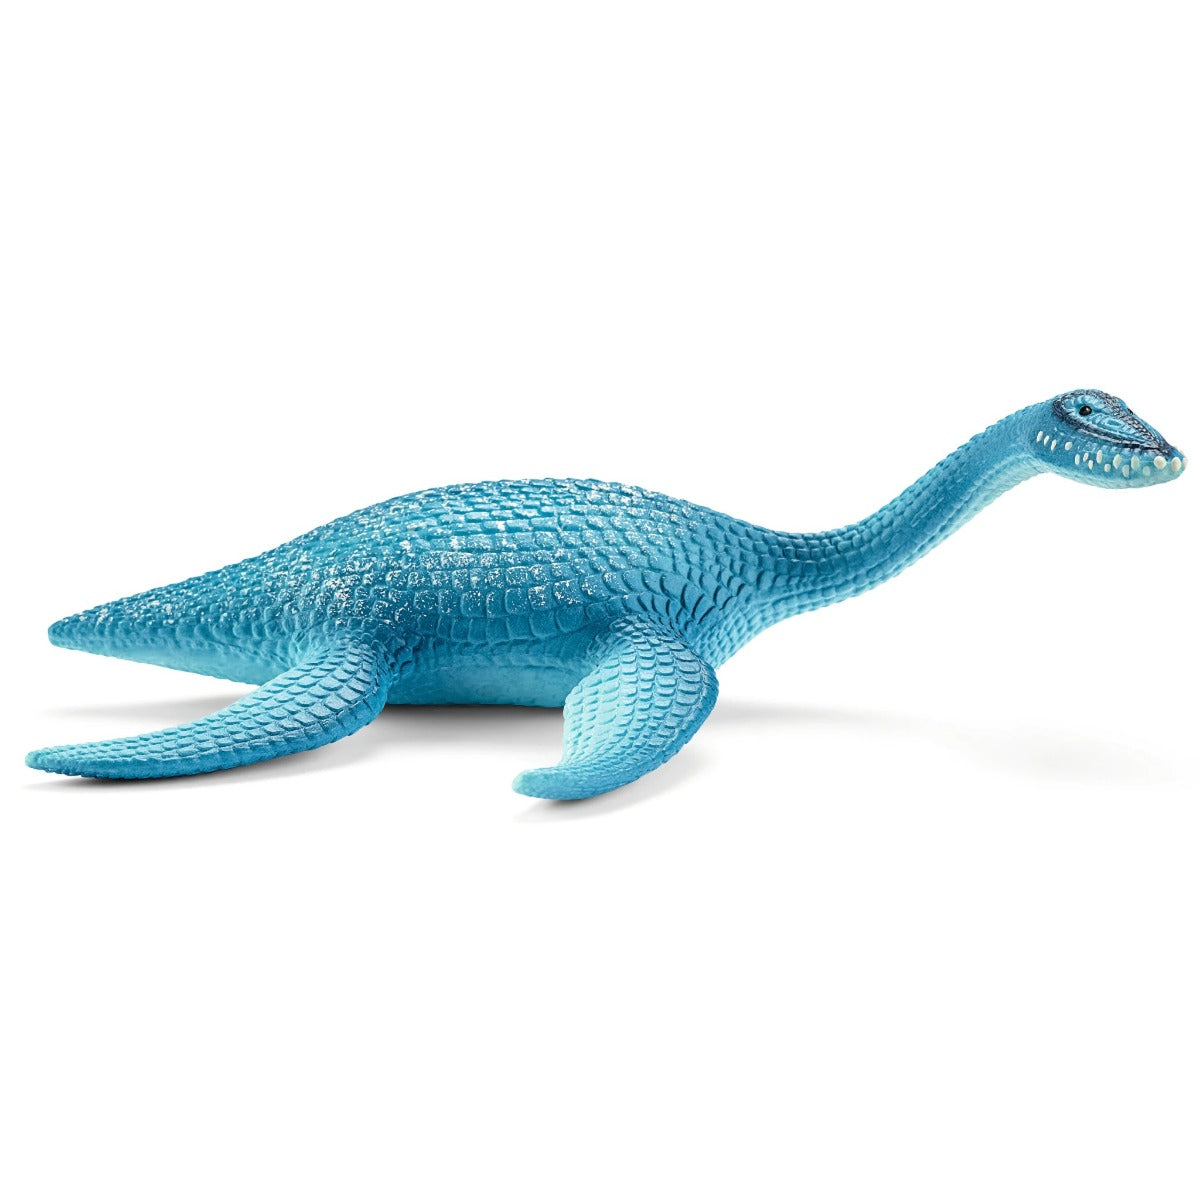 Schleich Plesiousaurus Dinosaur at Little Sprout